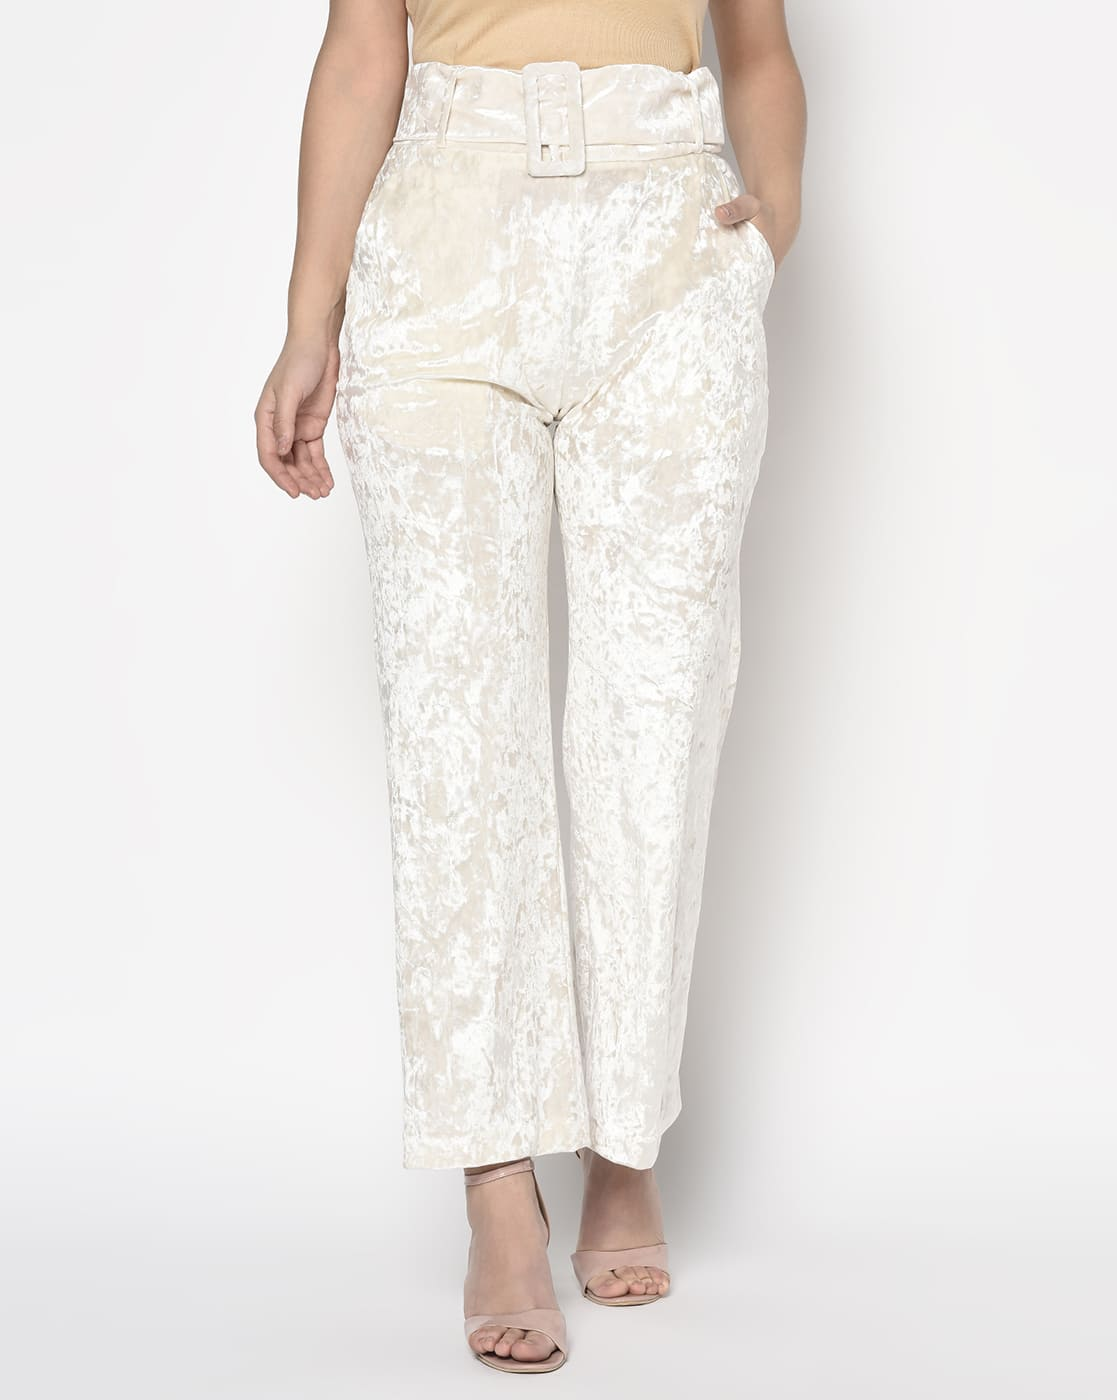 White Velvet High Waist Pant With Belt